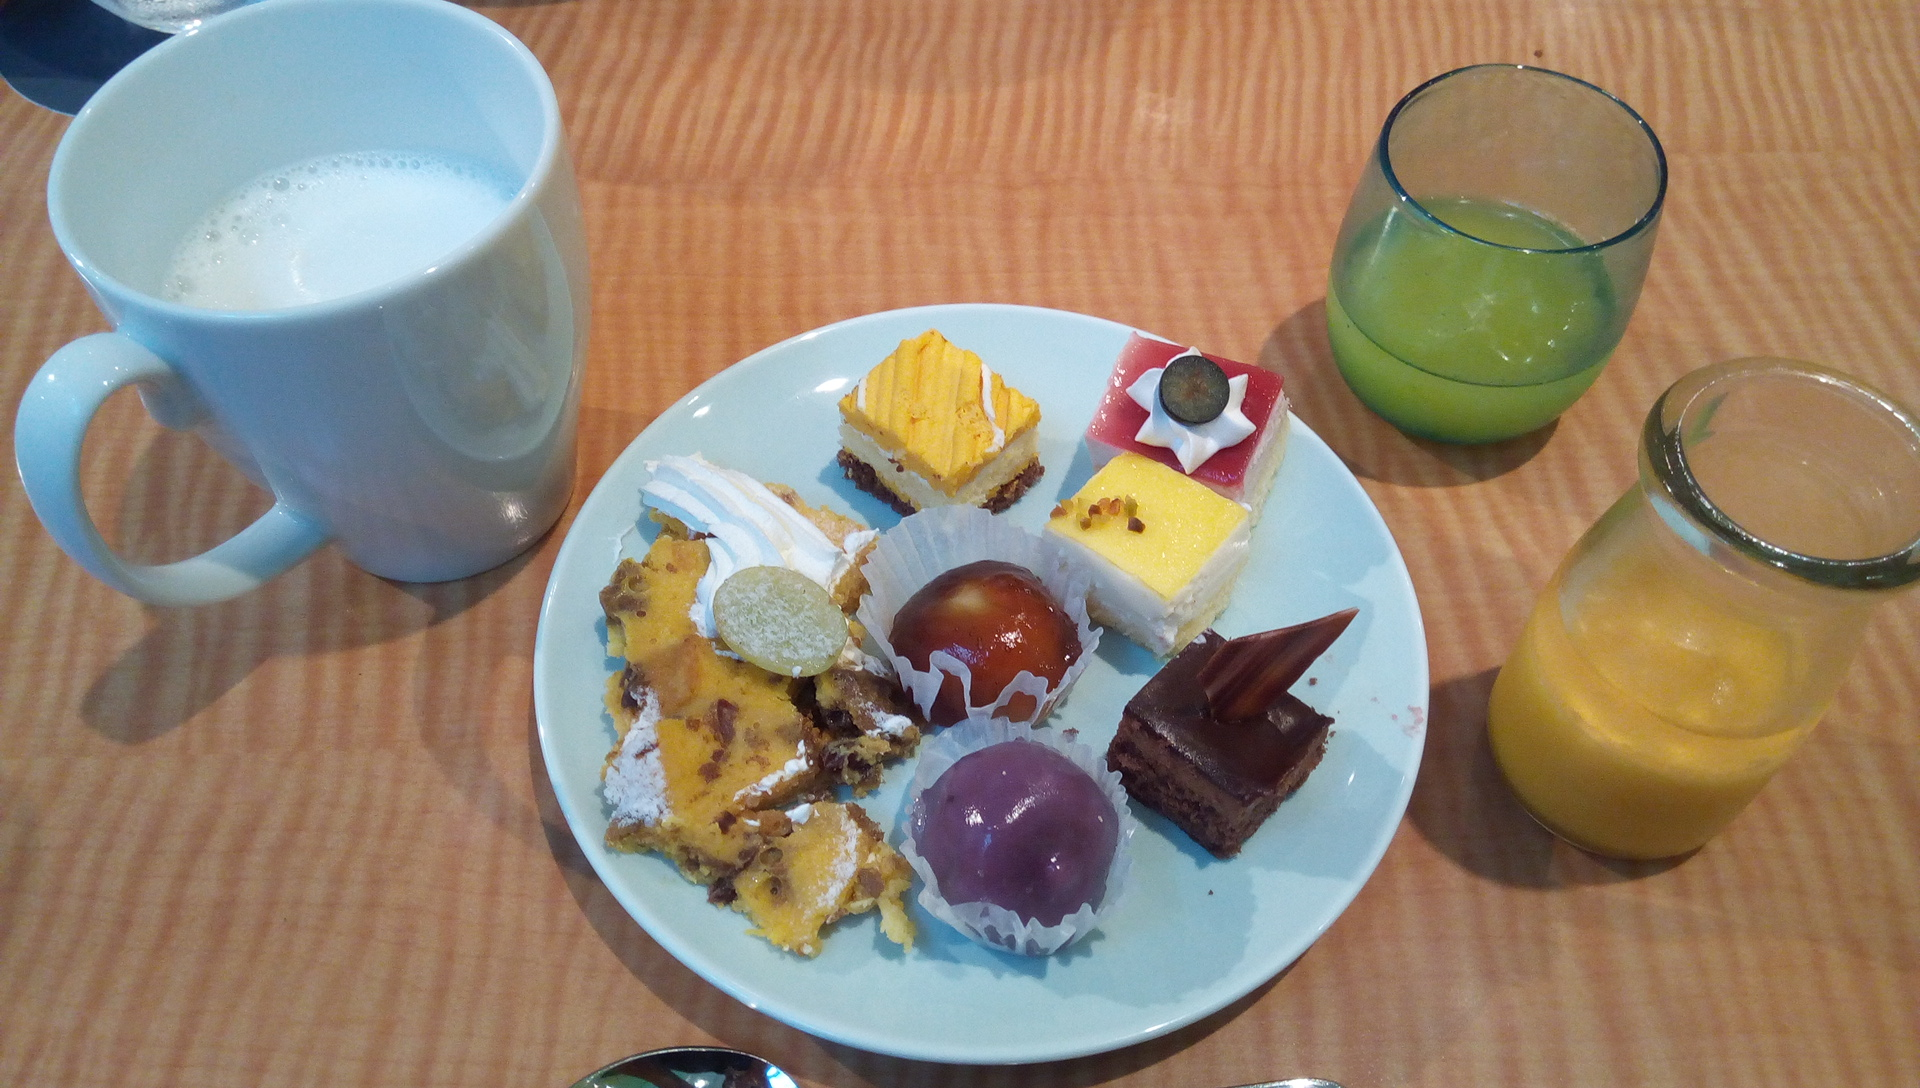 Assorted sweets of 5th dish